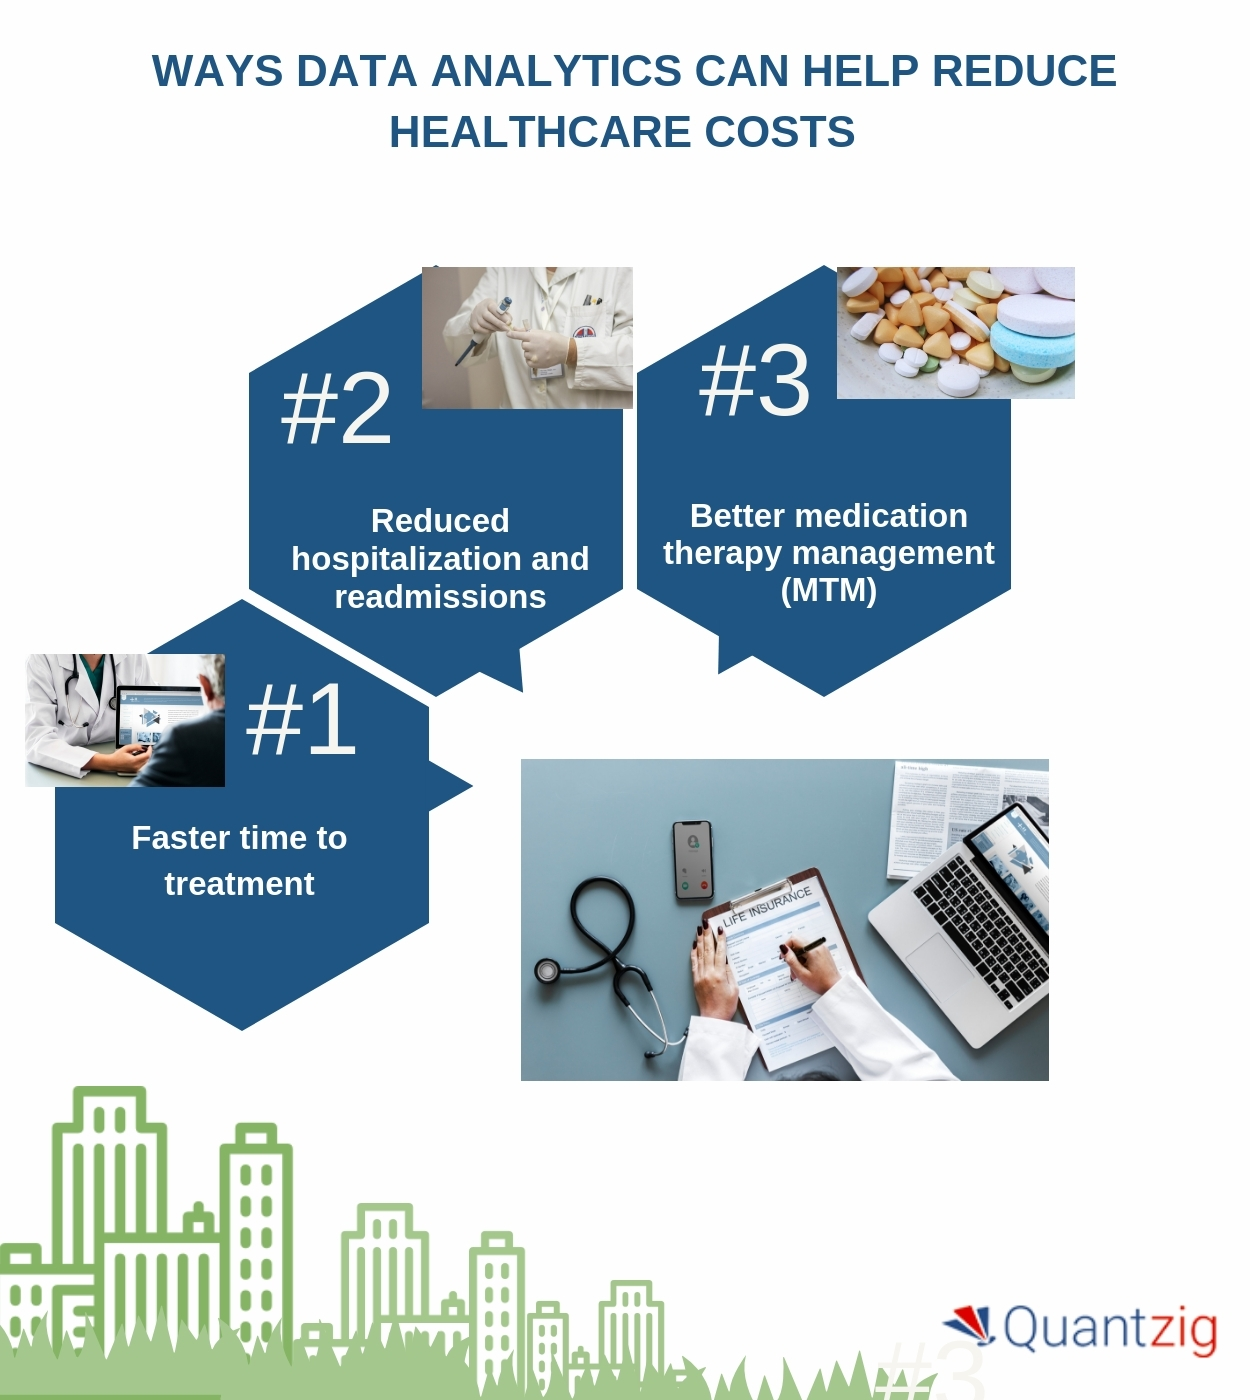 Business Wire Contact | Three Ways Data Analytics Can Help Reduce Healthcare Costs